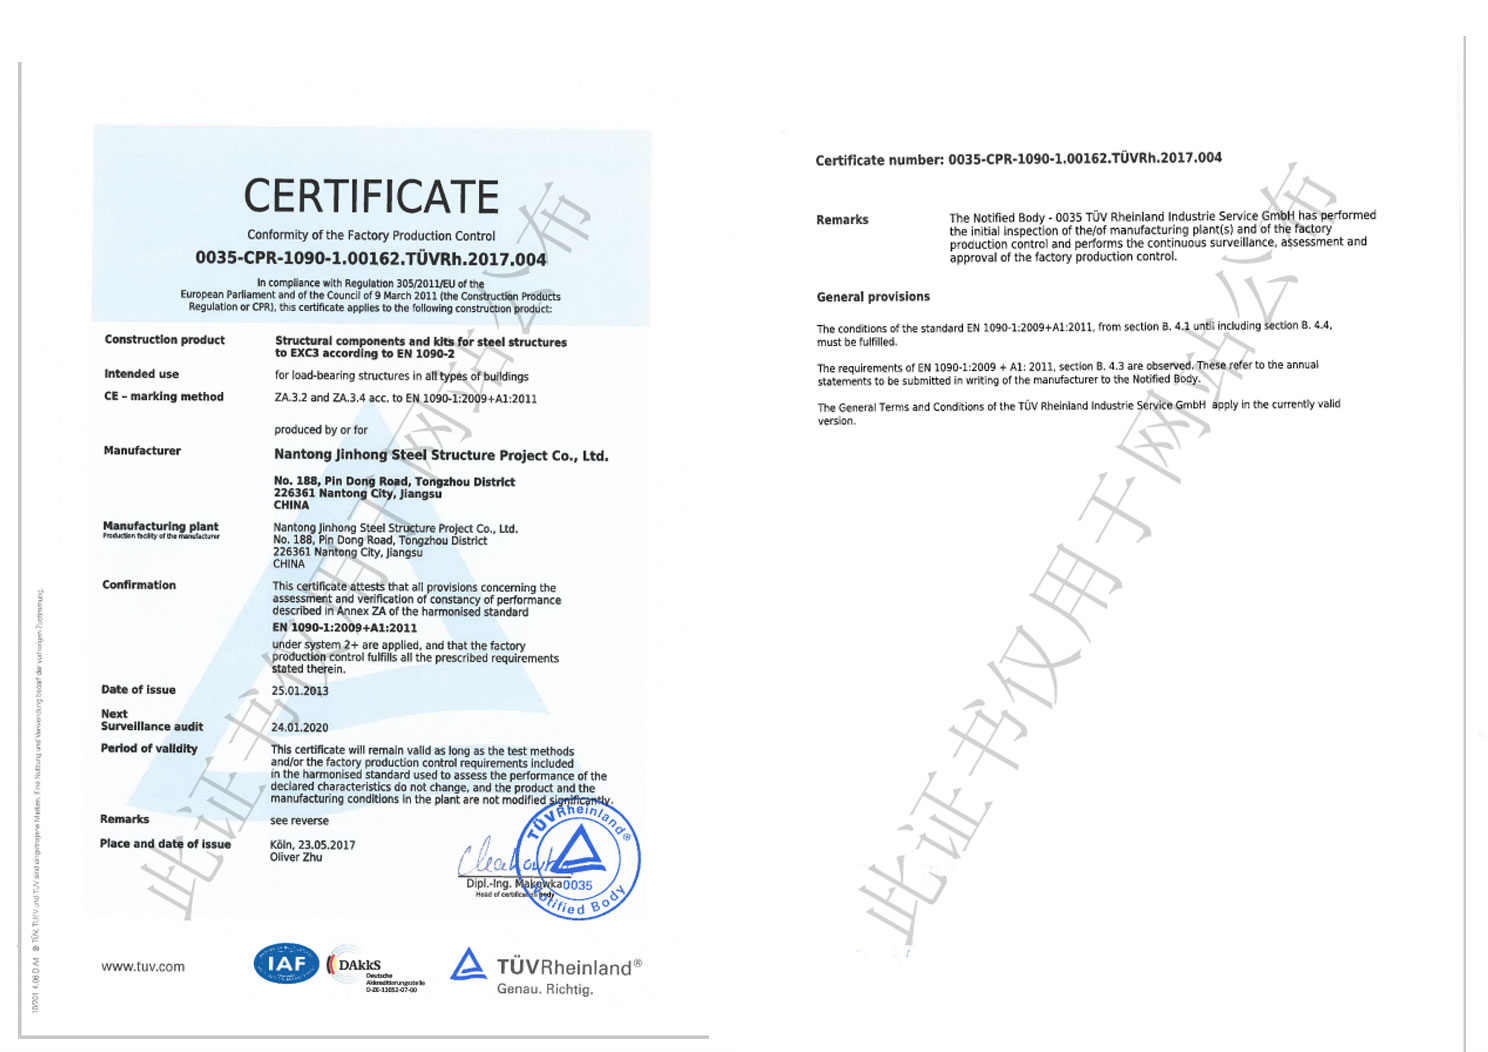 Nantong Jin Hong successfully passed the EN 1090 review